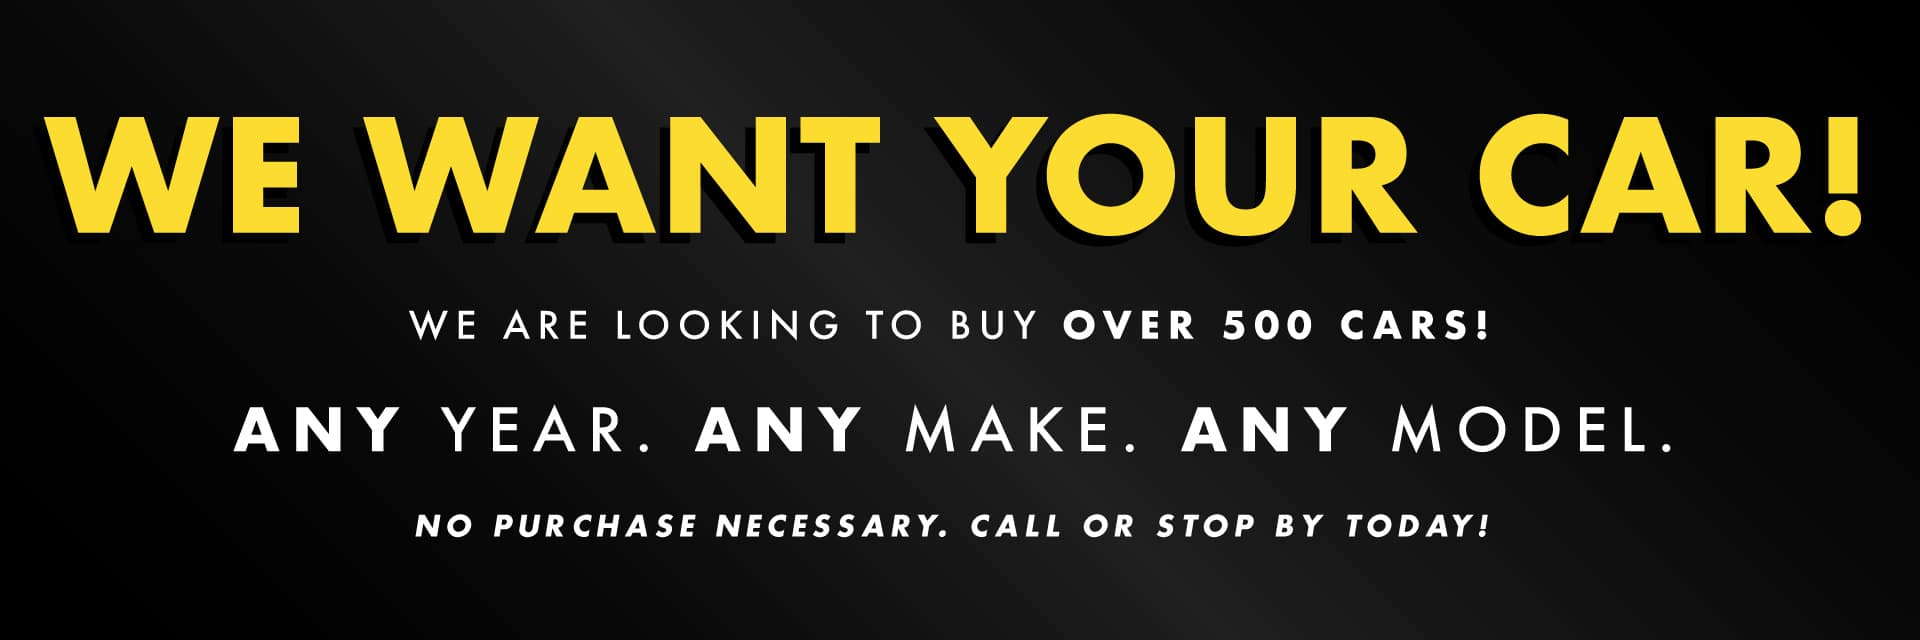 16513 kenaut Aug20 We Want Your Car Digital Graphics-1-1920X640